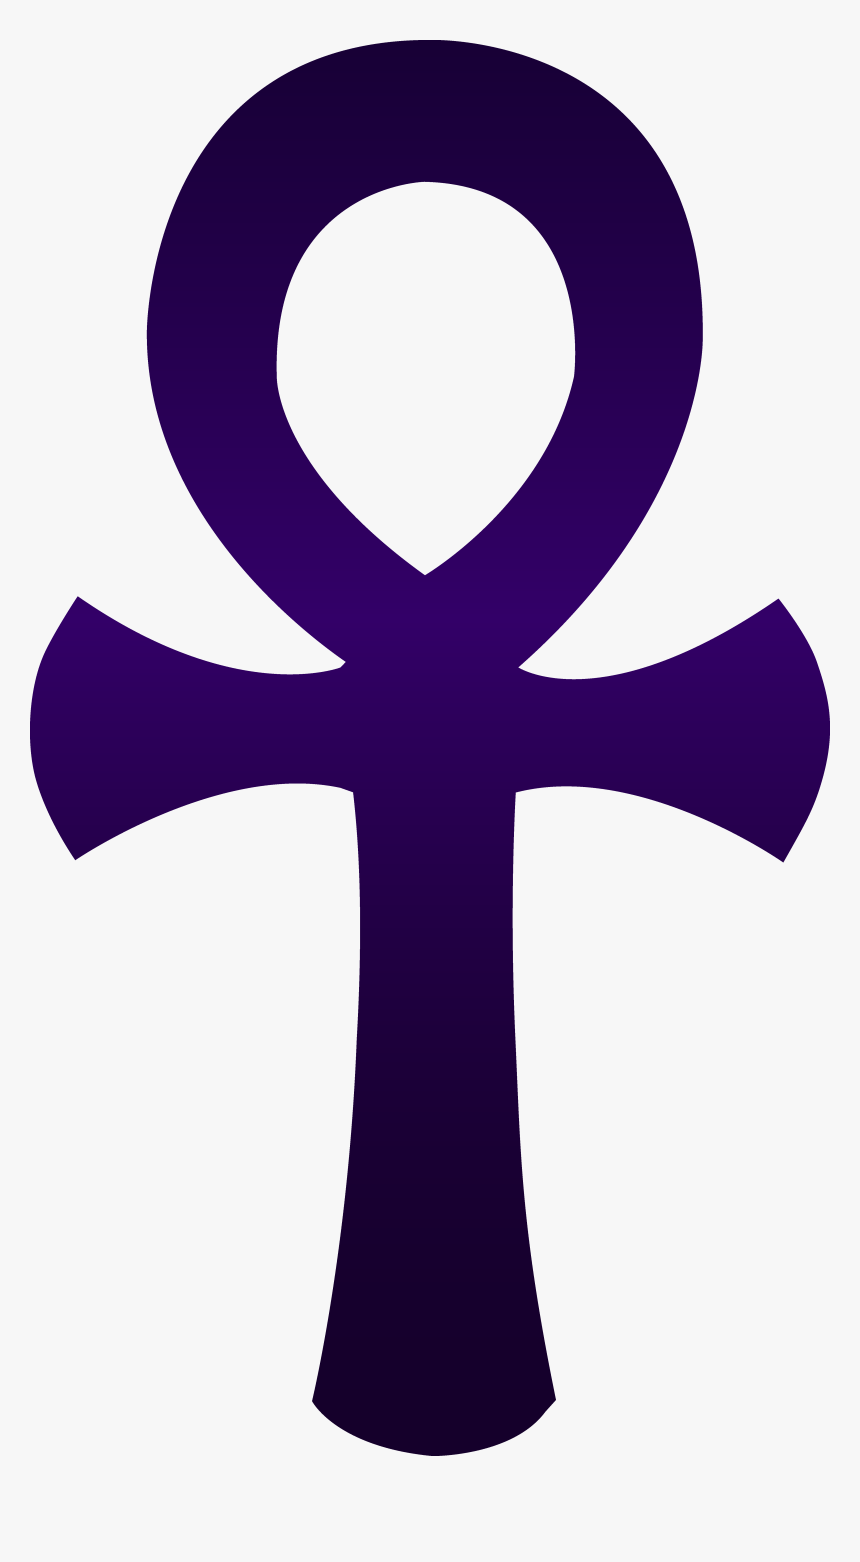 Ankh Clipart, HD Png Download.